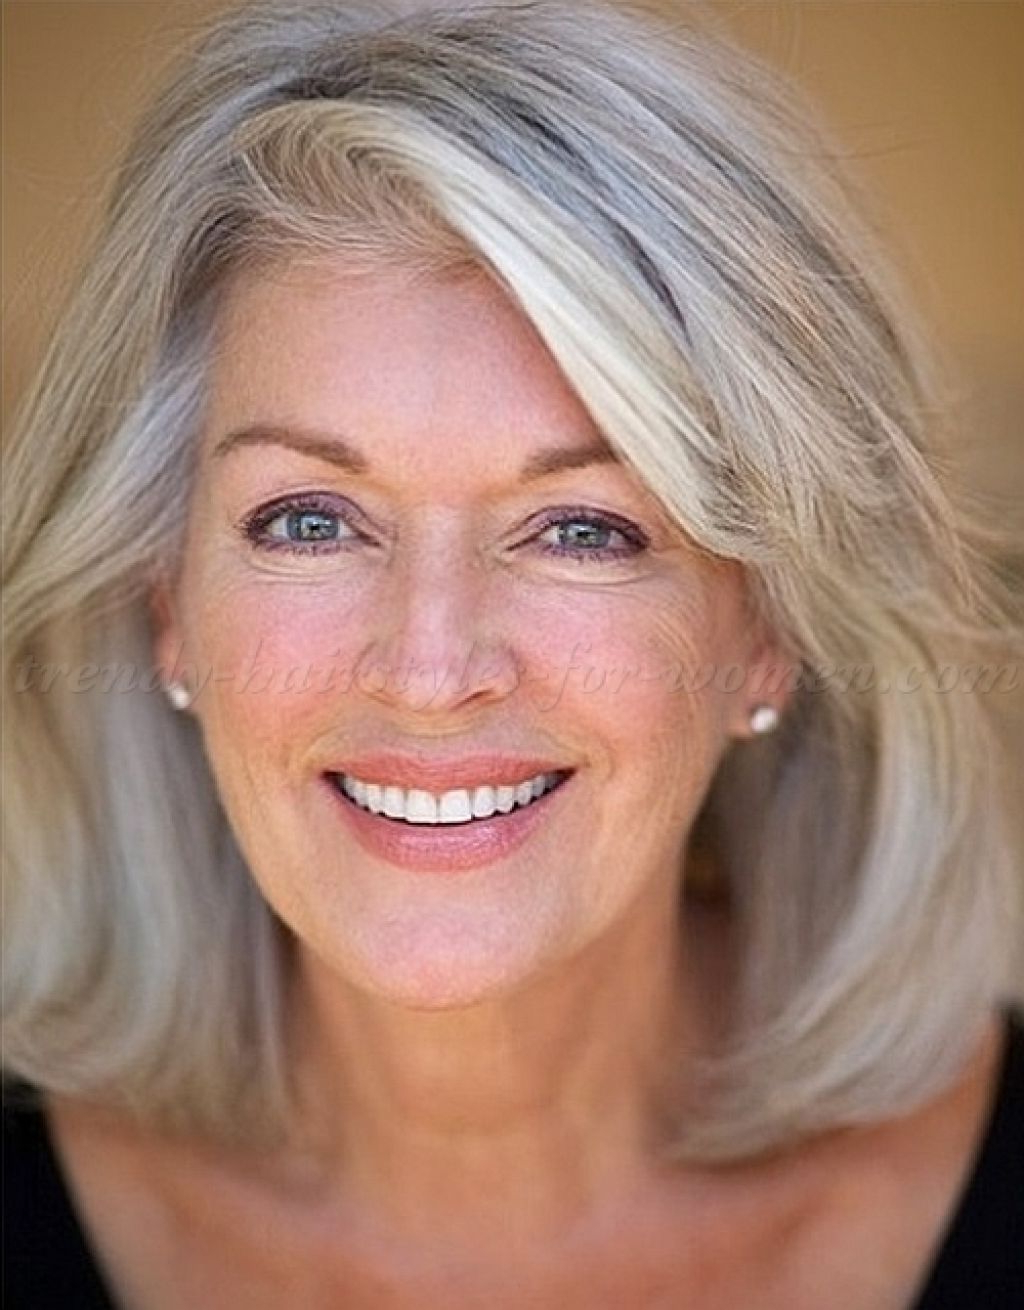 Widely Used Medium Hairstyles For Women With Gray Hair Inside Image Result For 2017 Hairstyles For Medium Hair For Gray Hair On (View 1 of 20)